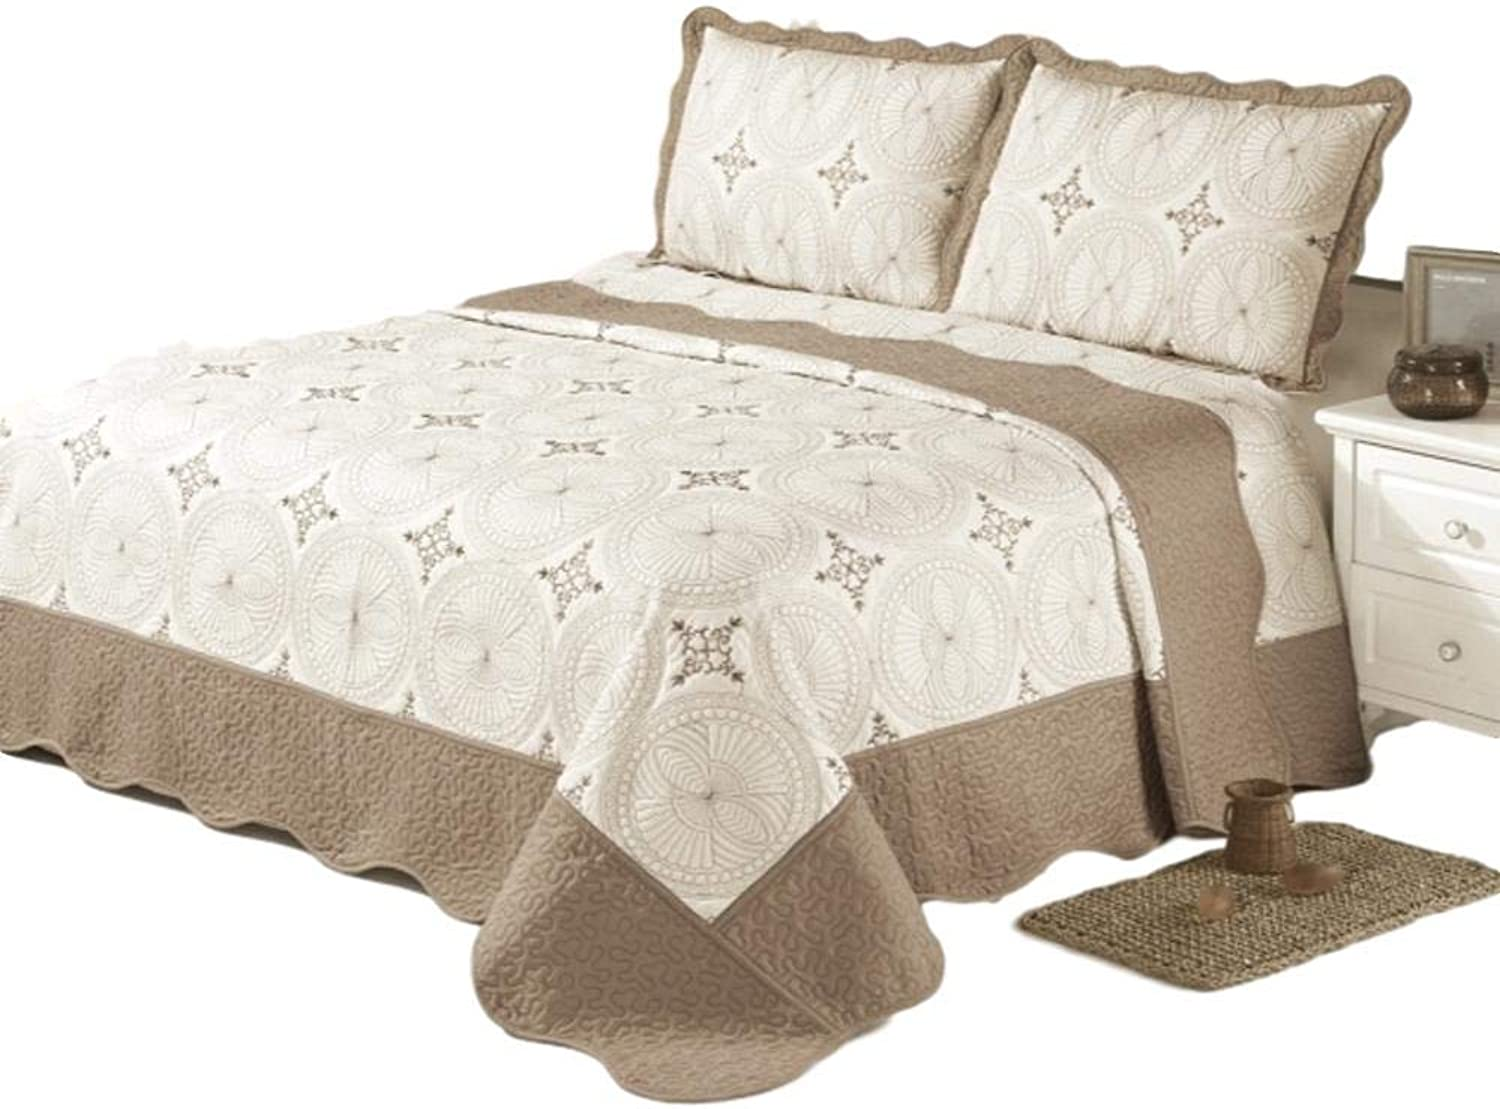 California King Size Quilt 3 Piece Bedding Bed set   Bedspread   Embroidered   2 Pillow Shams (Brown)